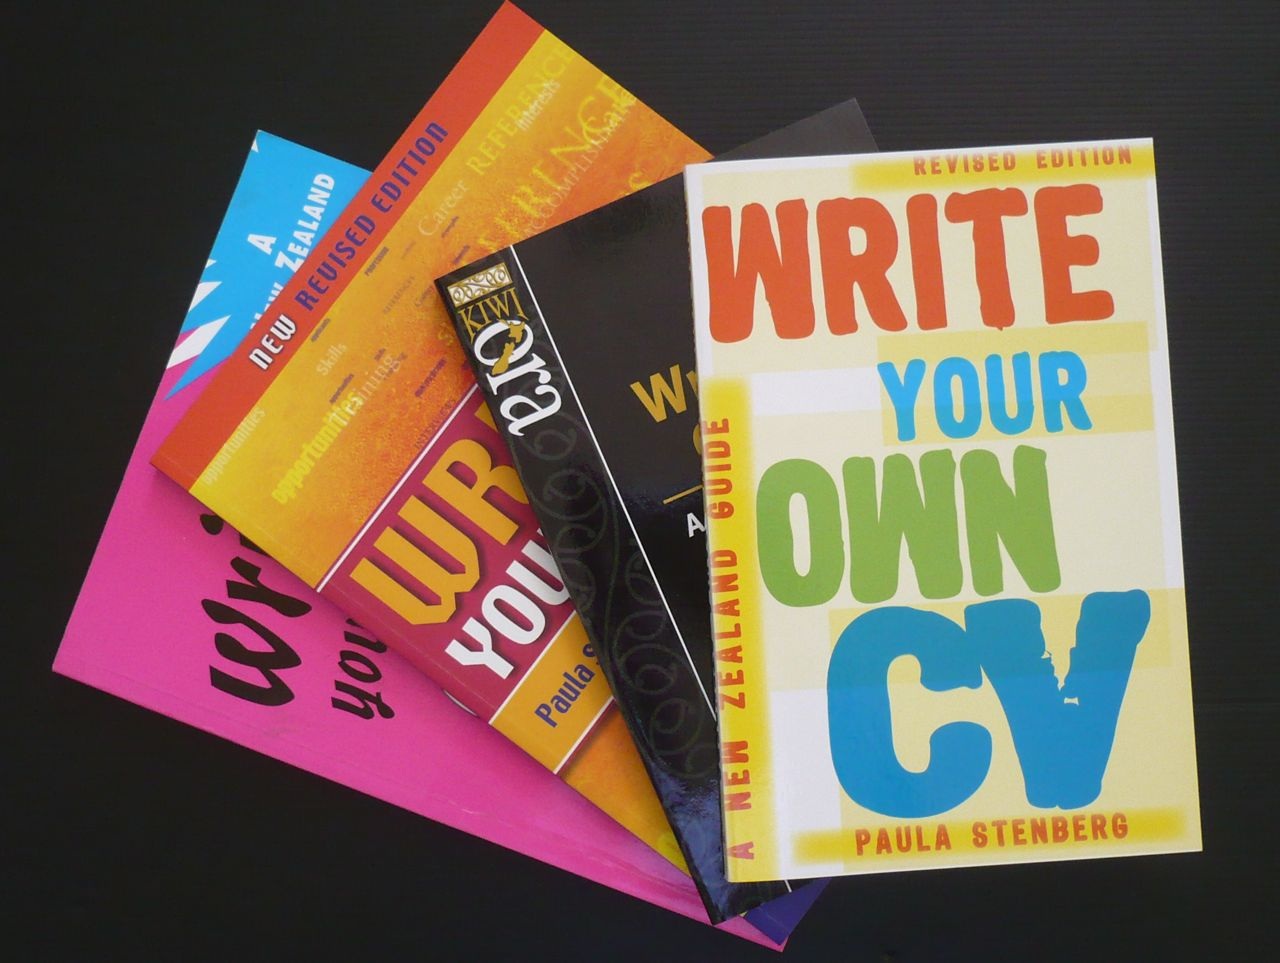 cv preparation nz cv books jpg cv writing books by paula stenberg from please place your orders by emailing me direct